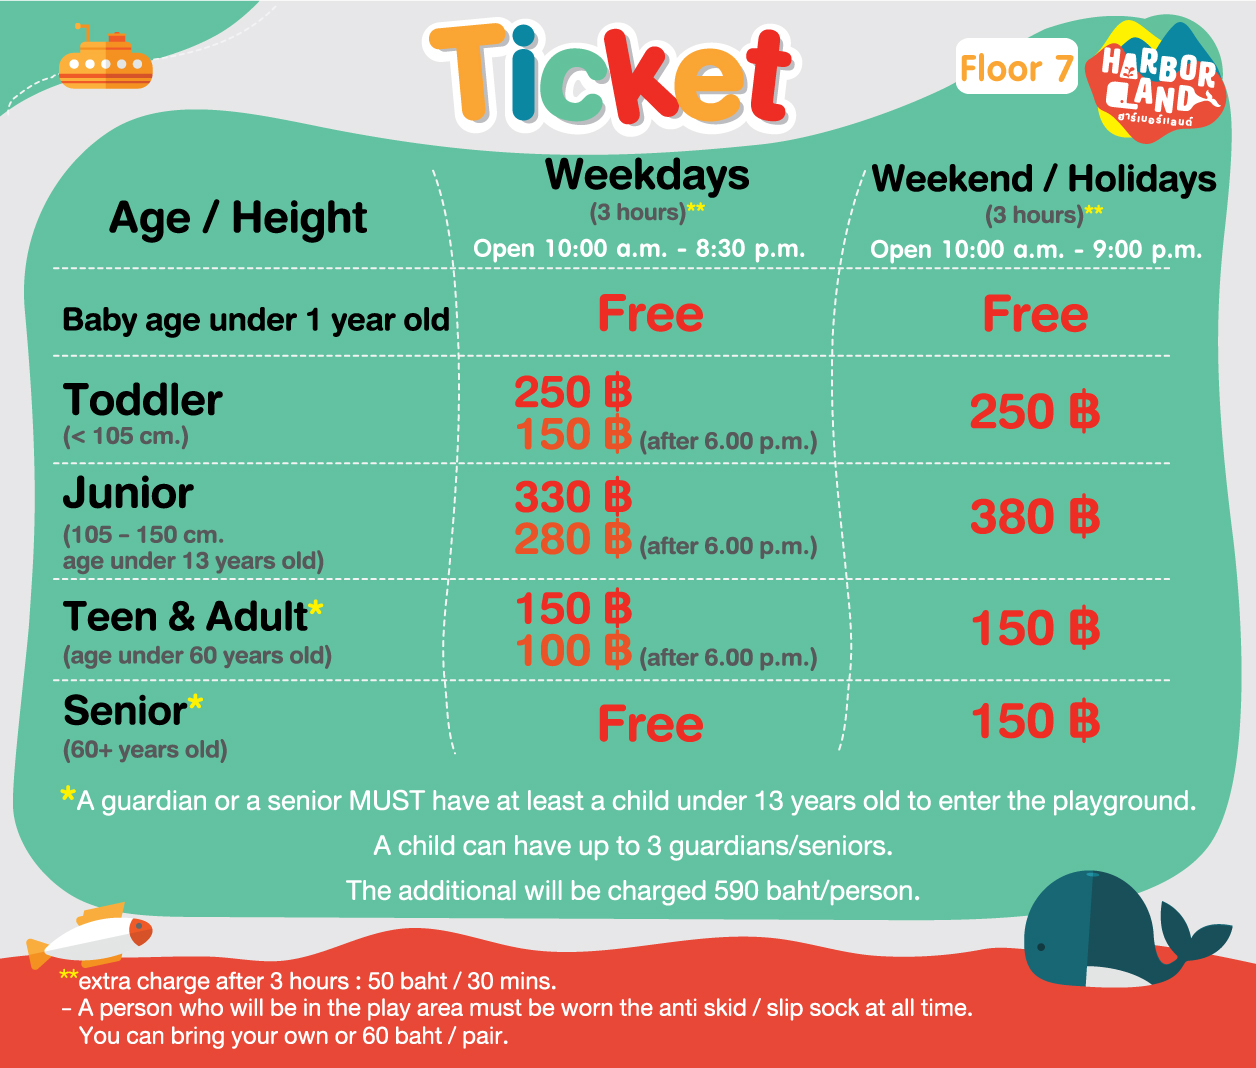 HARBOR LAND ticket